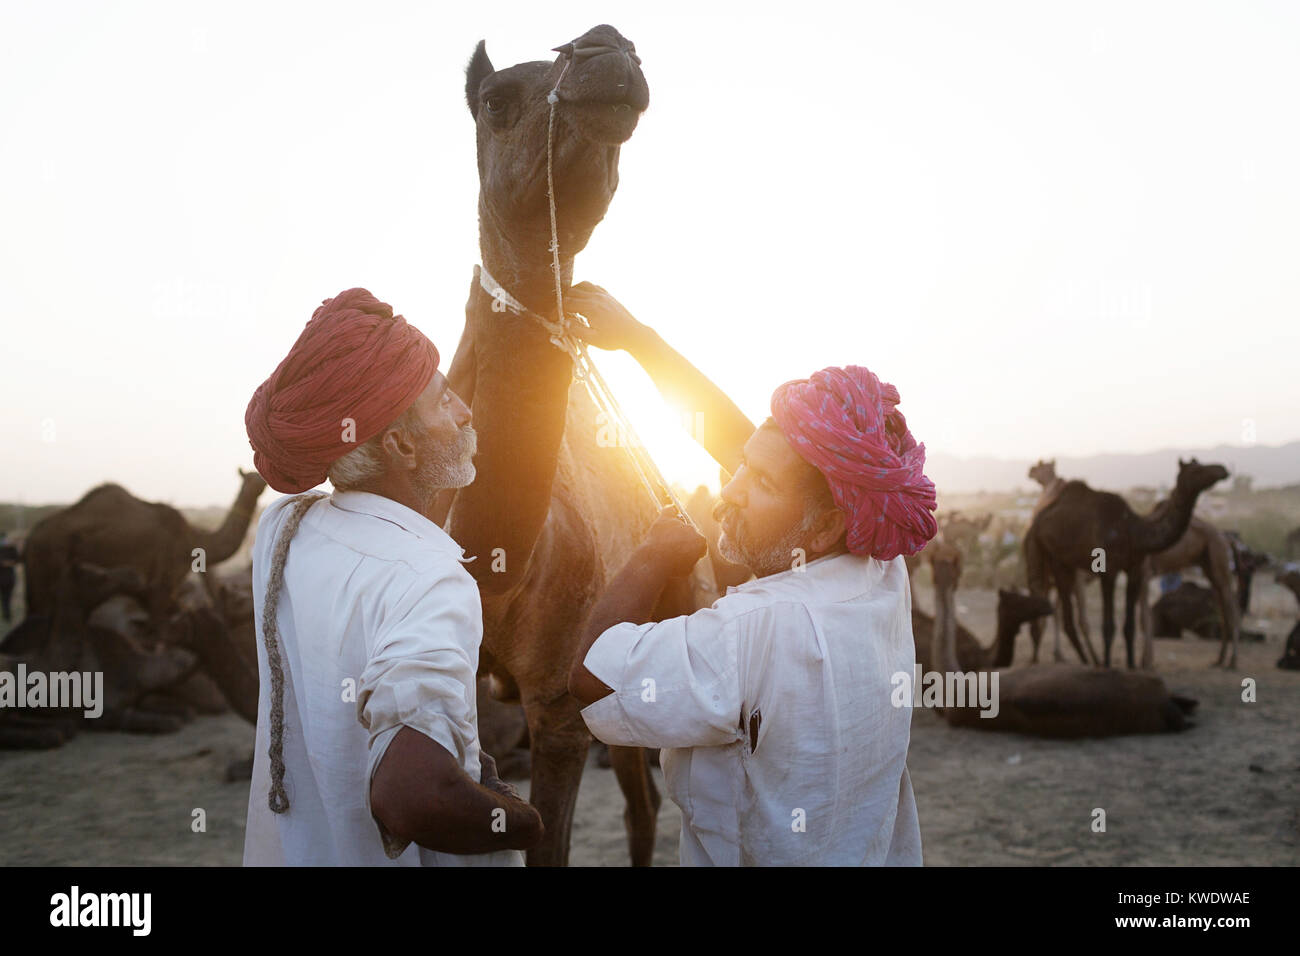 Scene at Pushkar Camel Fair, traders trying to tame disobedient camel, Rajasthan, India - Stock Image